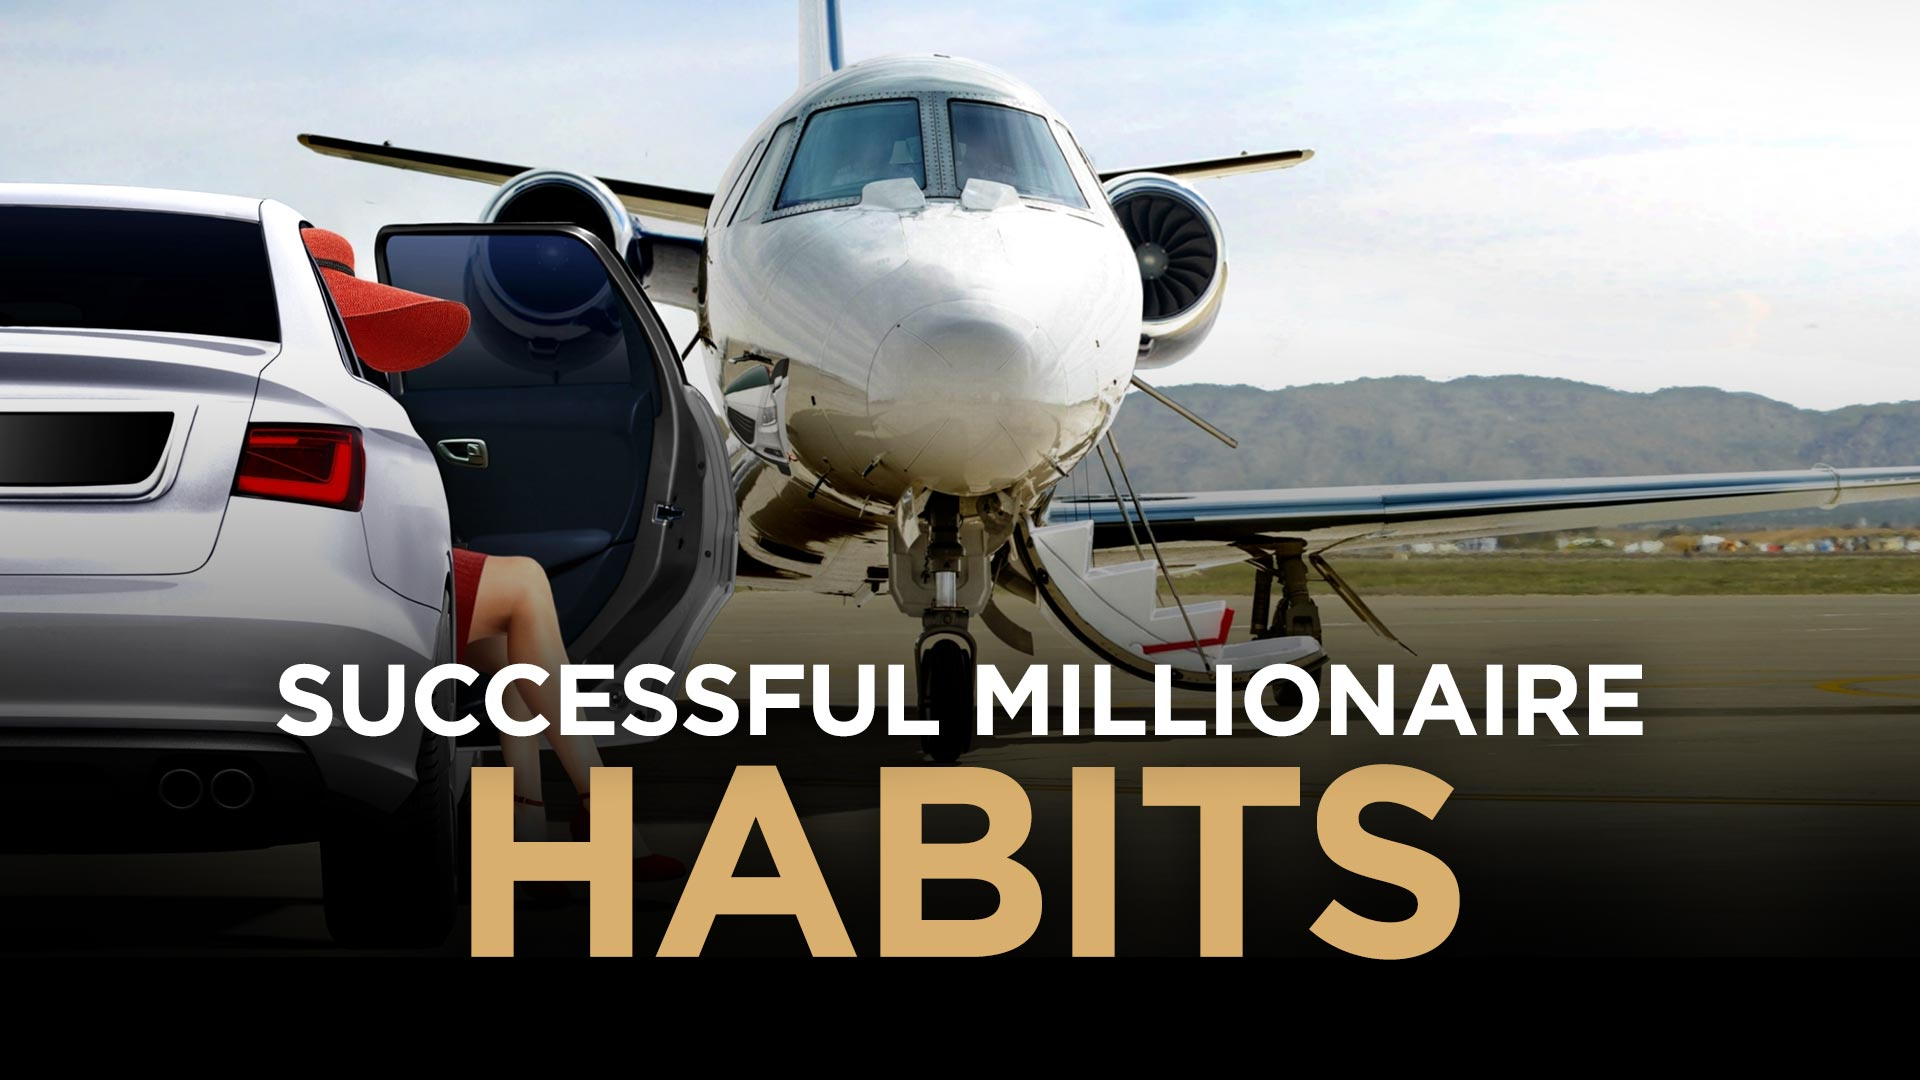 5 Overlooked Millionaire Habits That Will Make You Succeed Faster